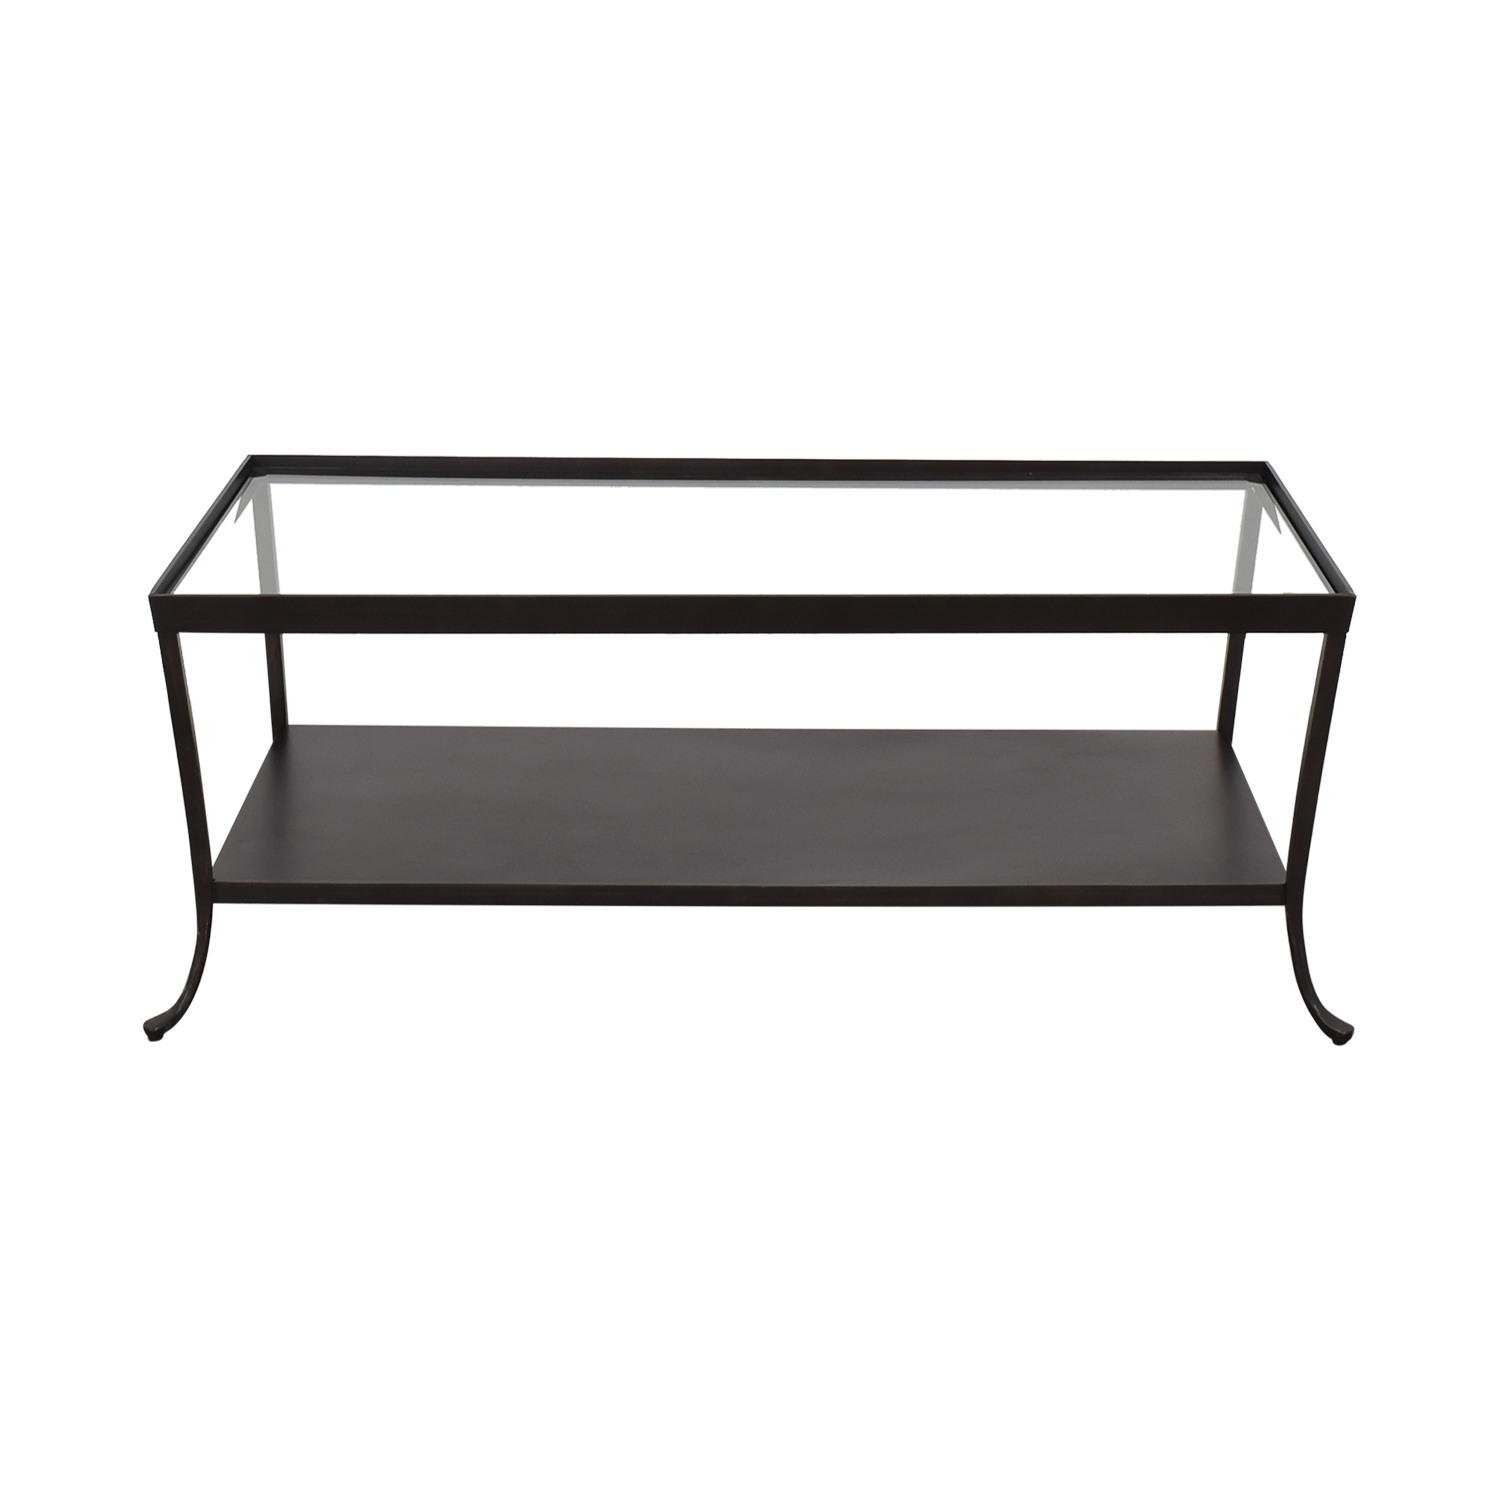 Crate & Barrel Crate & Barrel Transparent Coffee Table second hand